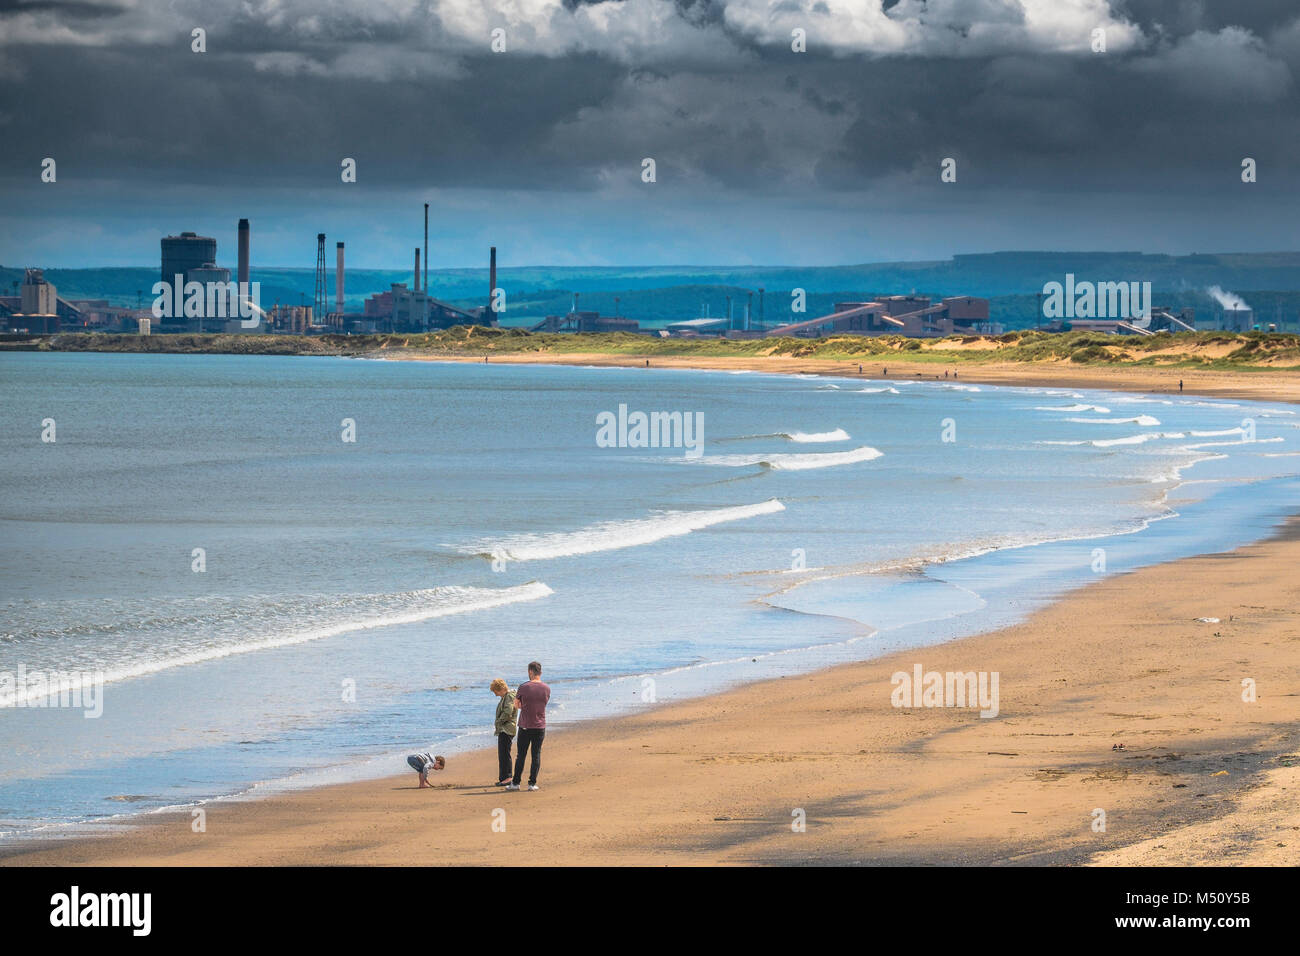 A family enjoy a beautiful beach with heavy industry in the background. - Stock Image